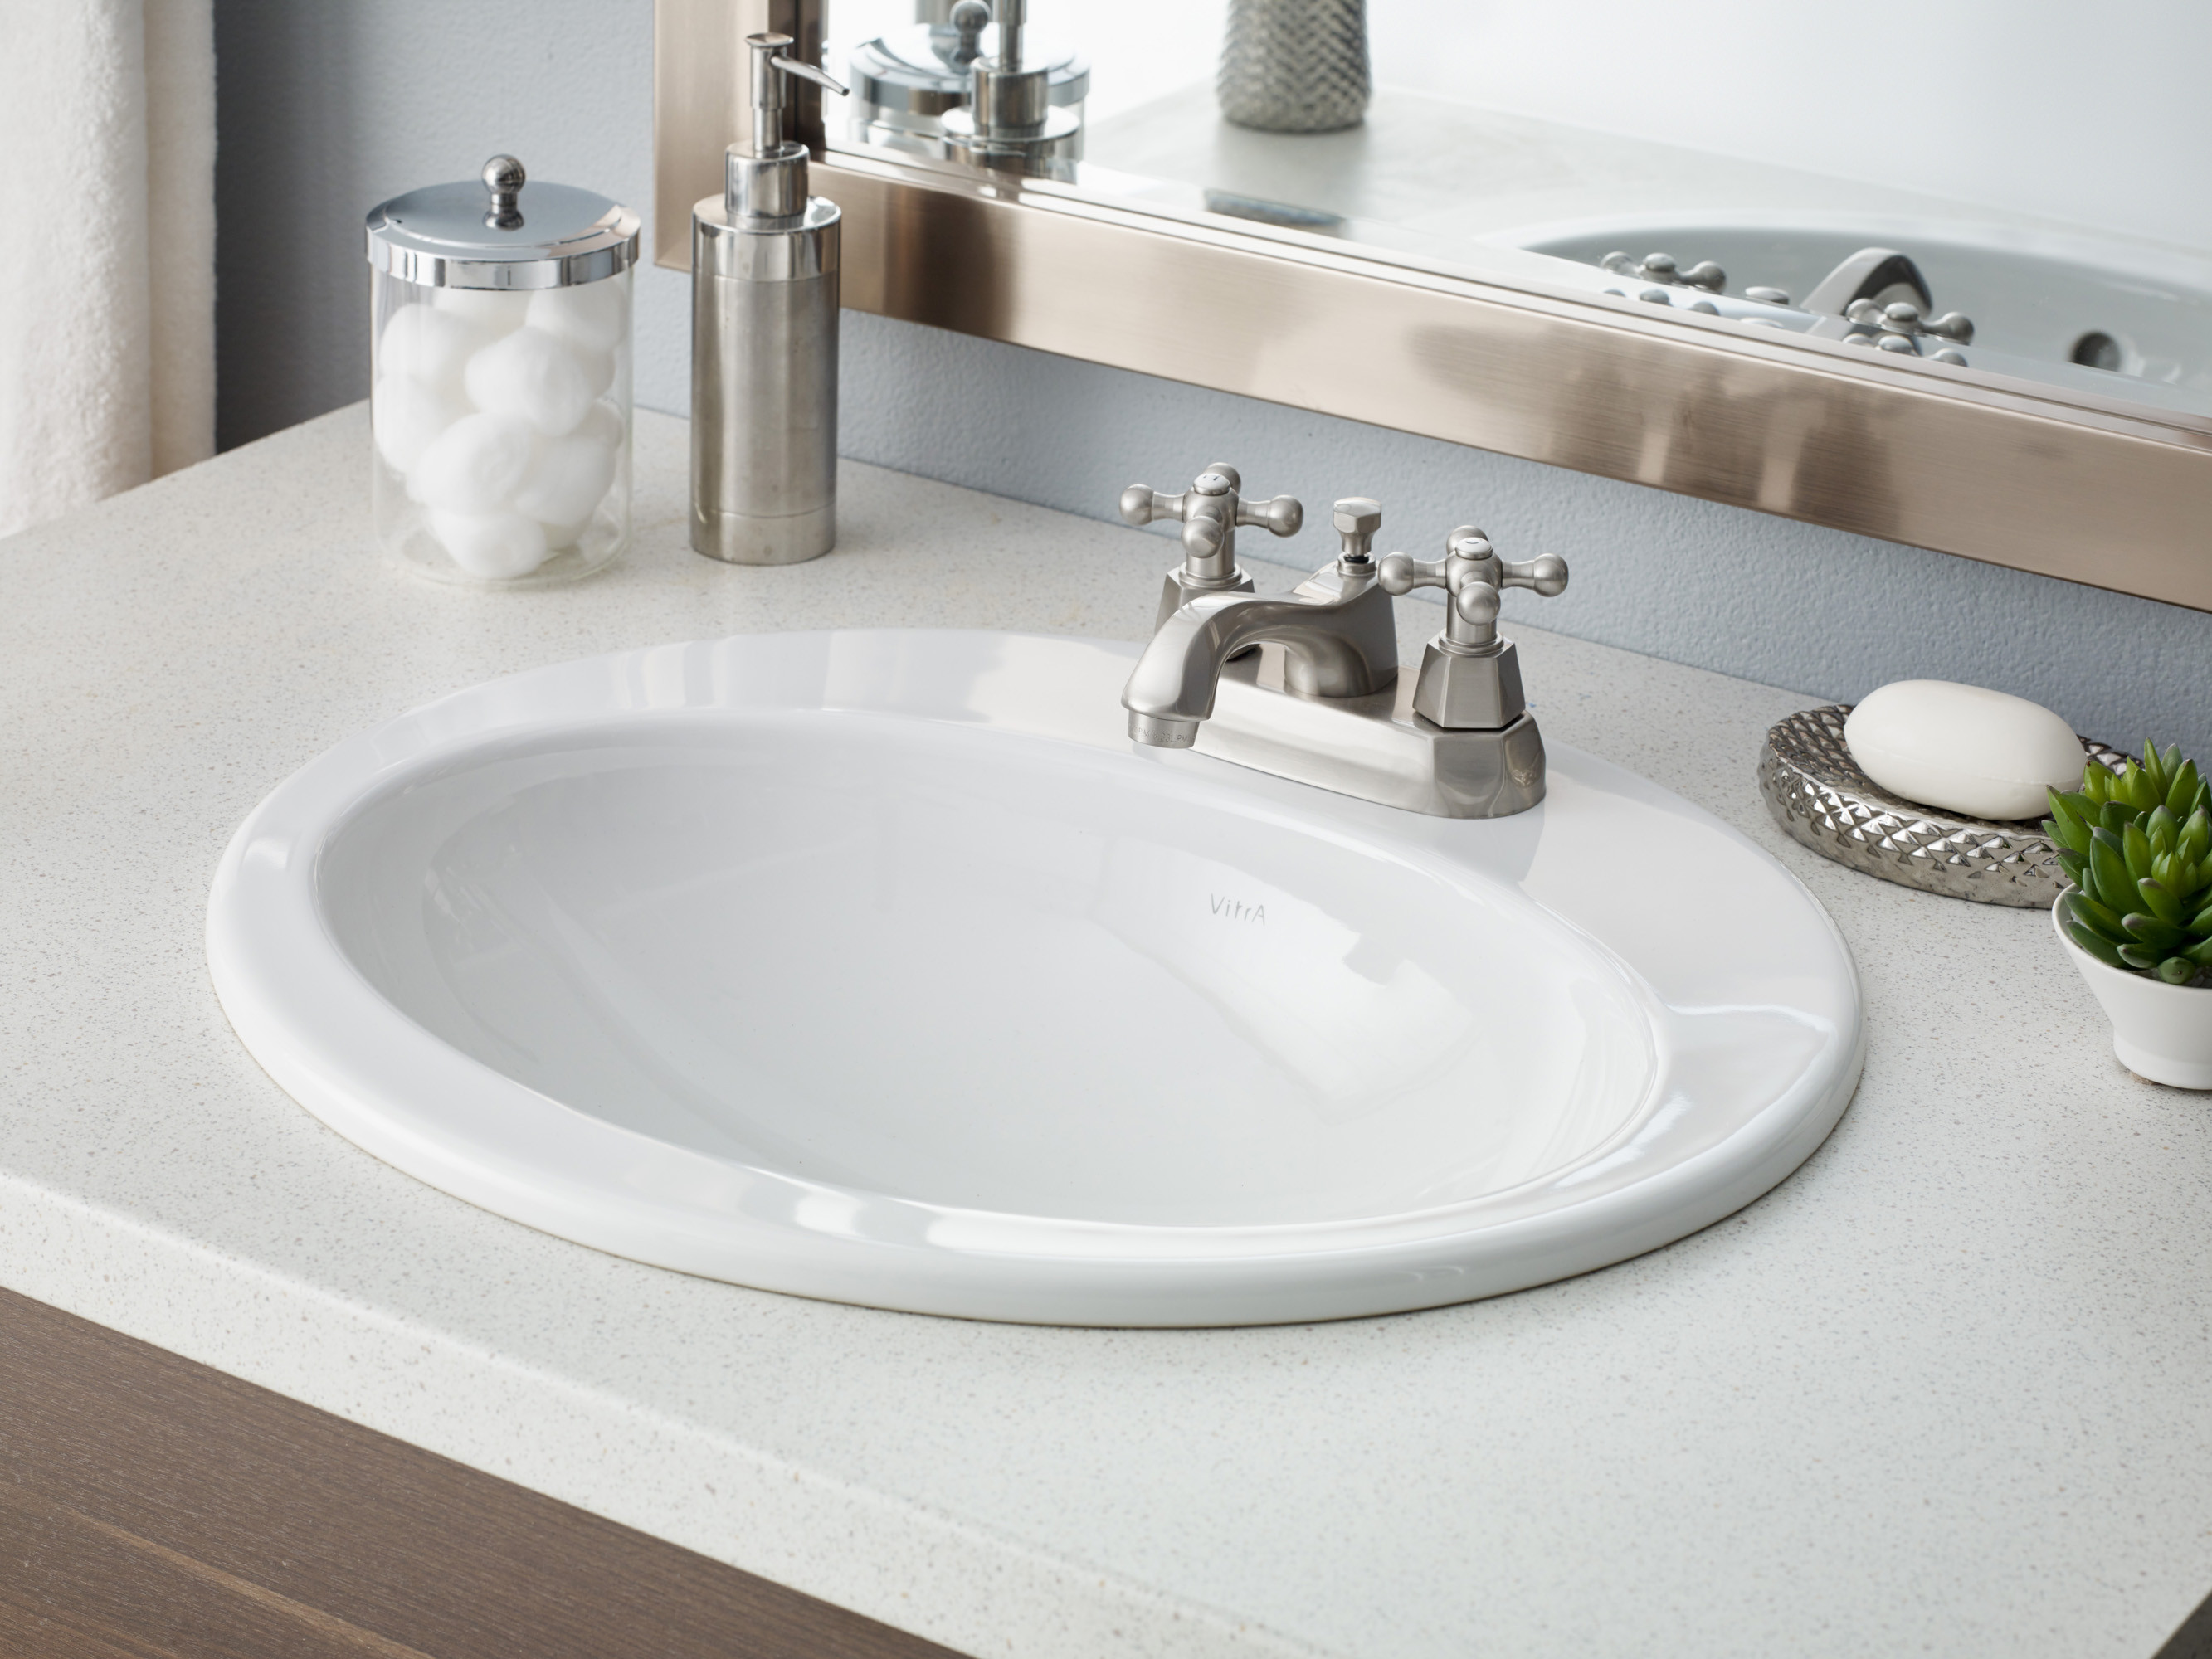 Cheviot 1168-WH-1 Aria Drop In Single Bowl Bathroom Basin with Single Faucet Hole